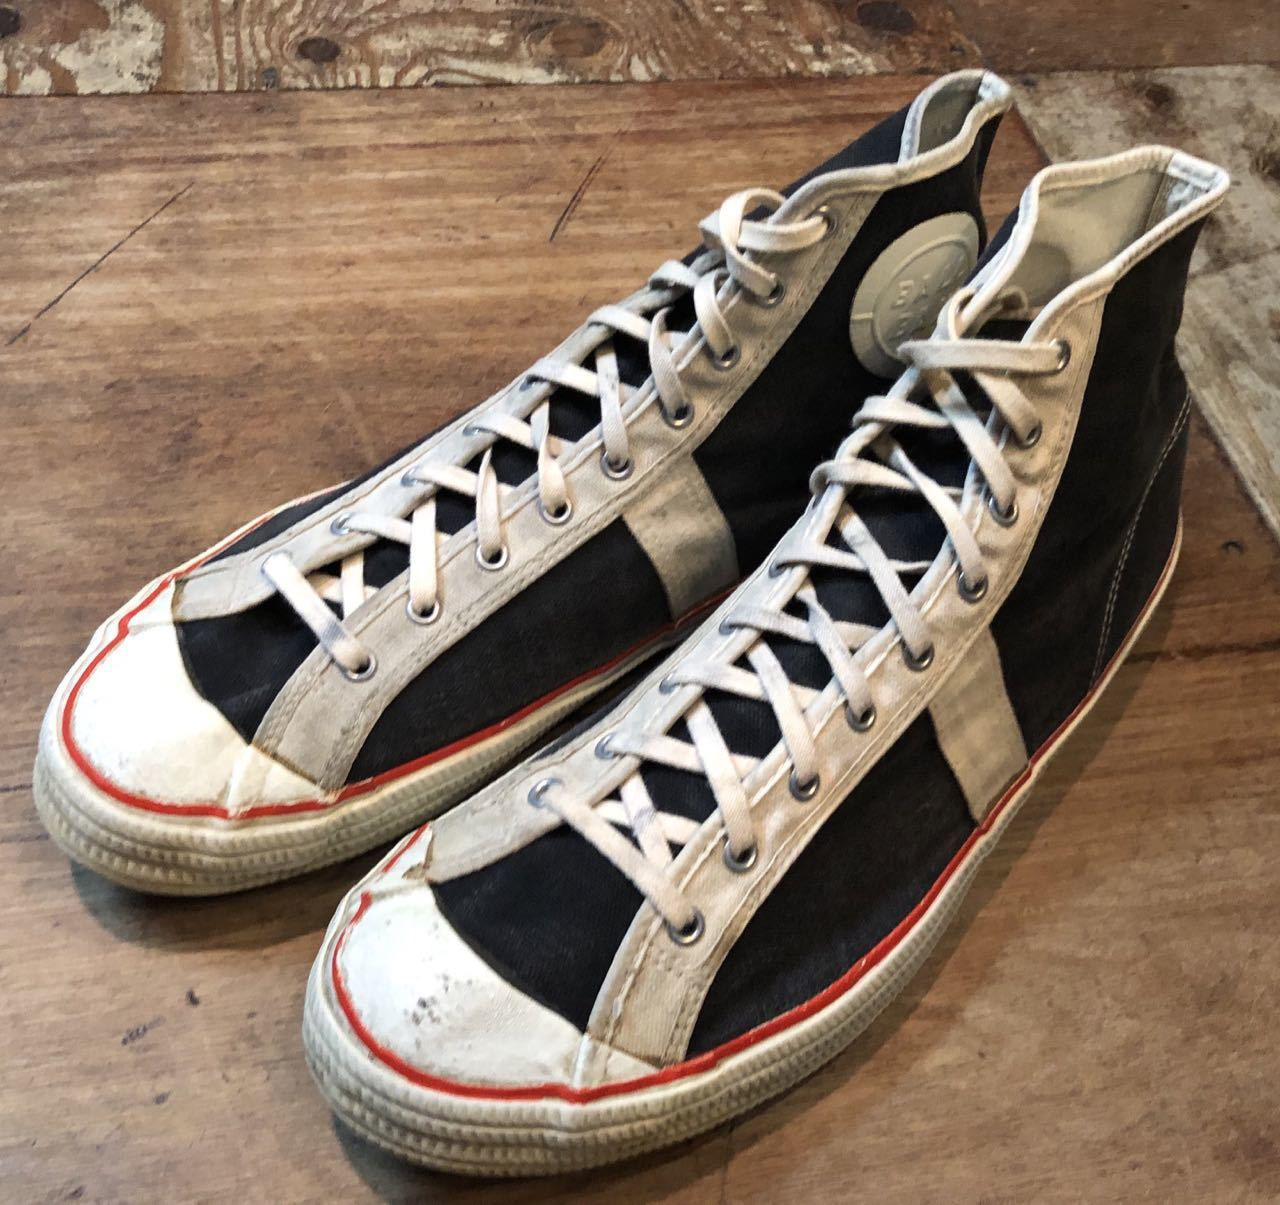 10月15日(火)入荷! 50s VINTAGE   BALLBAND CANVAS SHOES !_c0144020_18052422.jpg